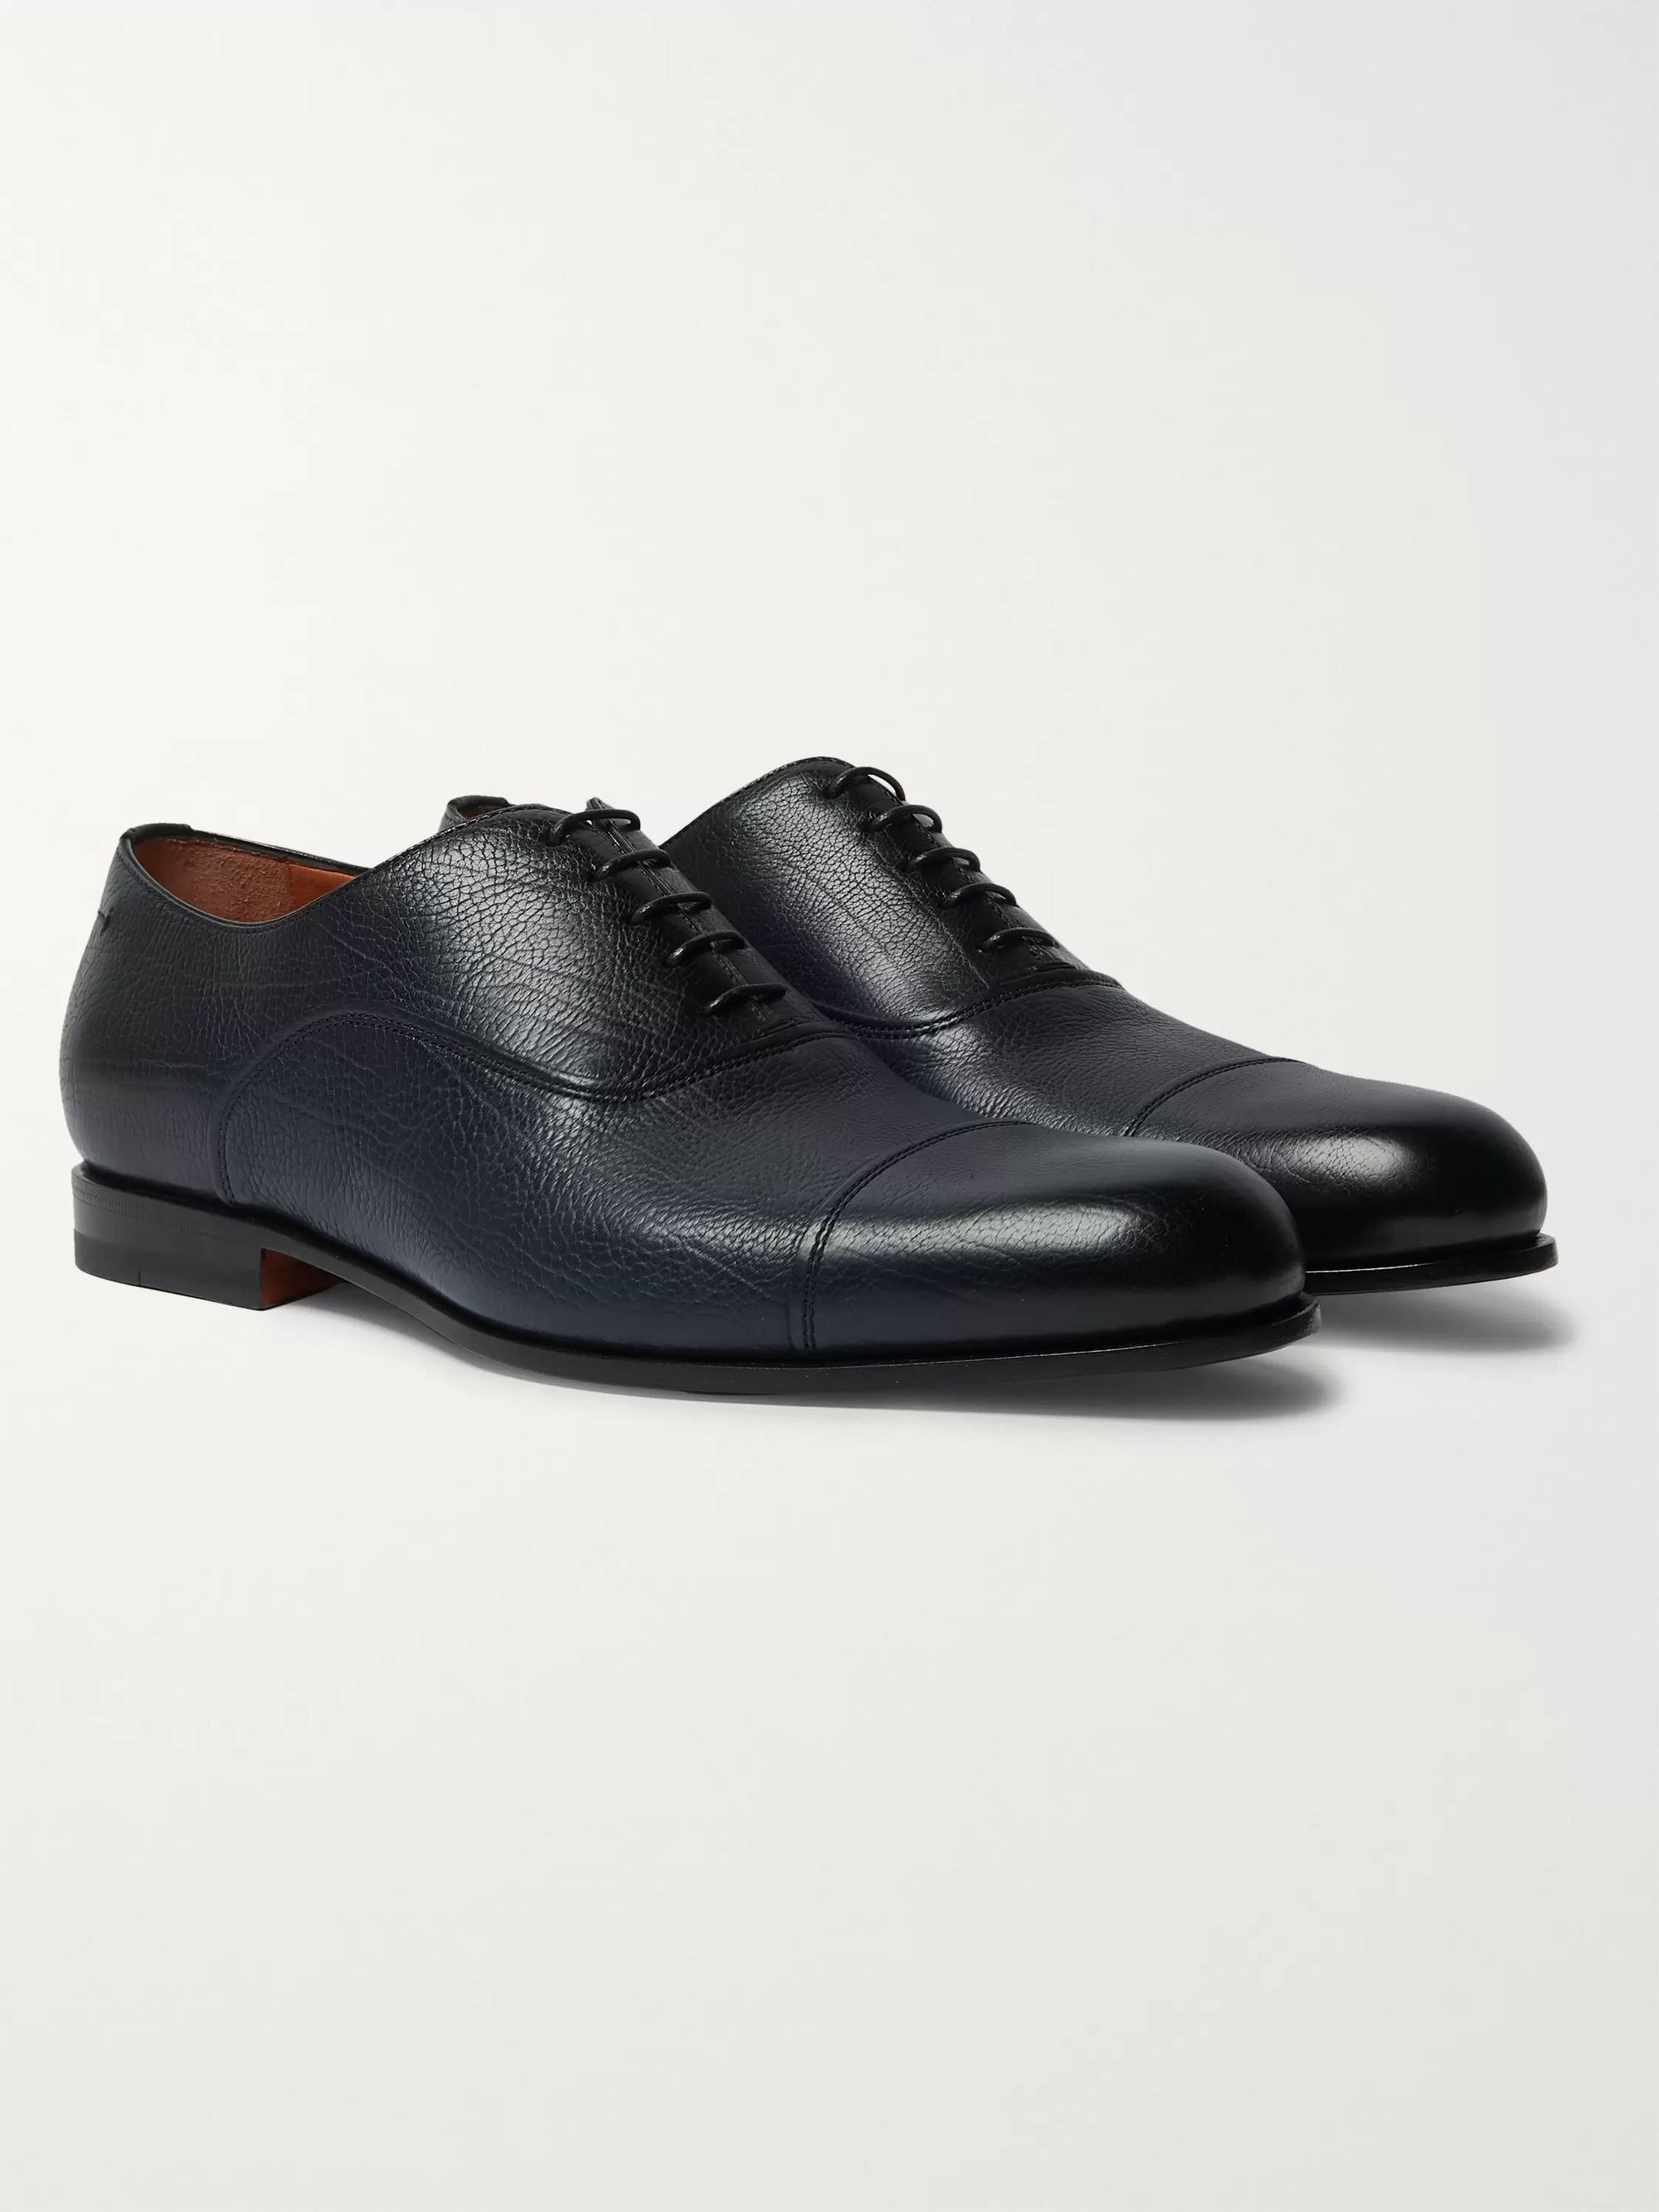 Santoni Cap-Toe Leather Oxford Shoes